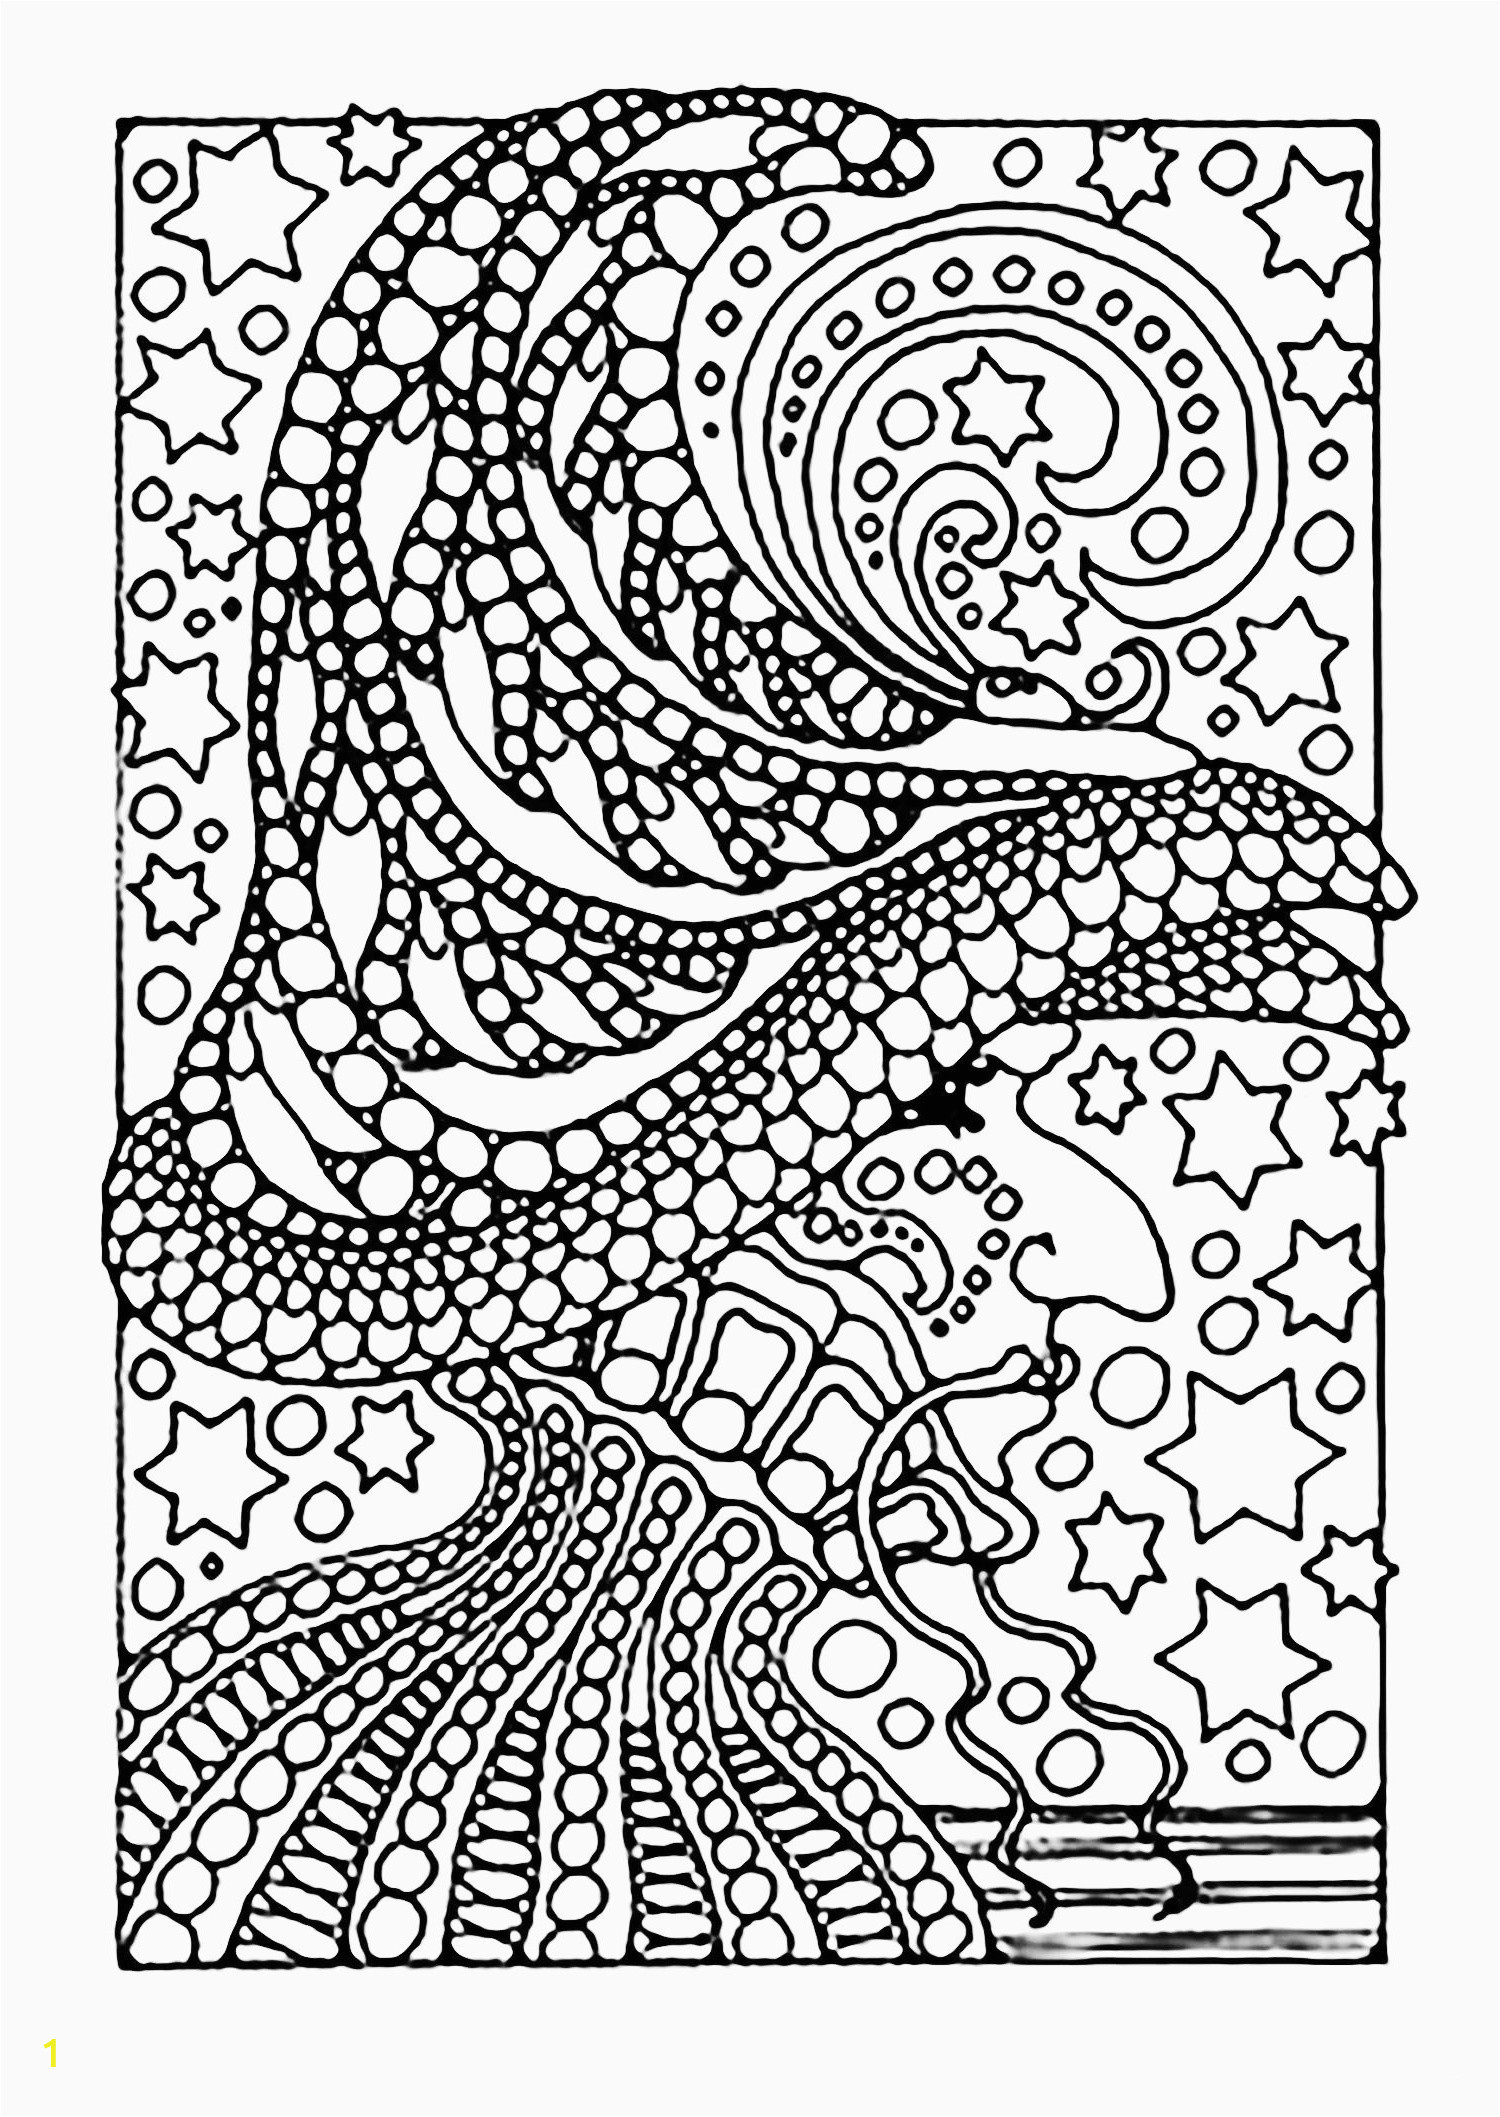 patriotic coloring page free inspirational photos new flag template of patriotic coloring page free